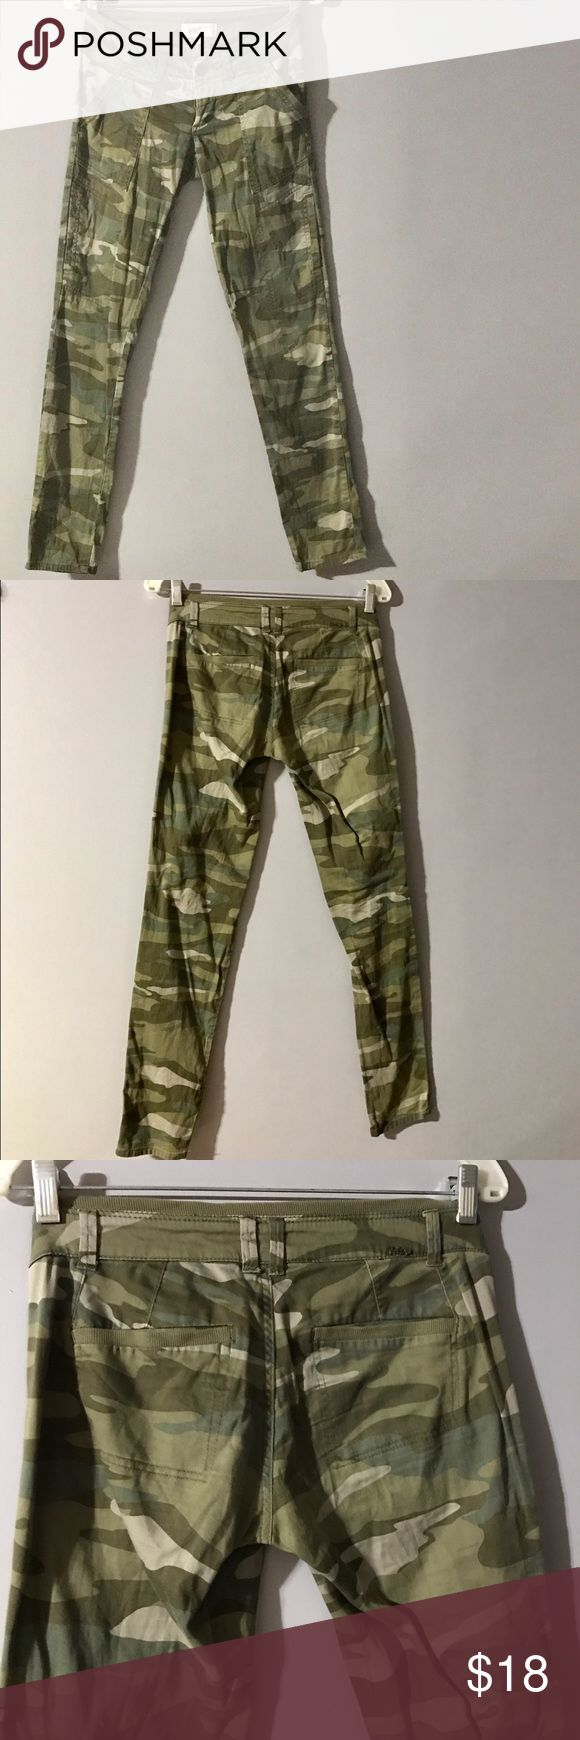 Jolt Camo Skinny Pants These gentle uses camo pants are awesome. They fit like skinny jeans and are like cargo pants with knee pockets. Size 1 by Jolt. Jolt Pants Skinny